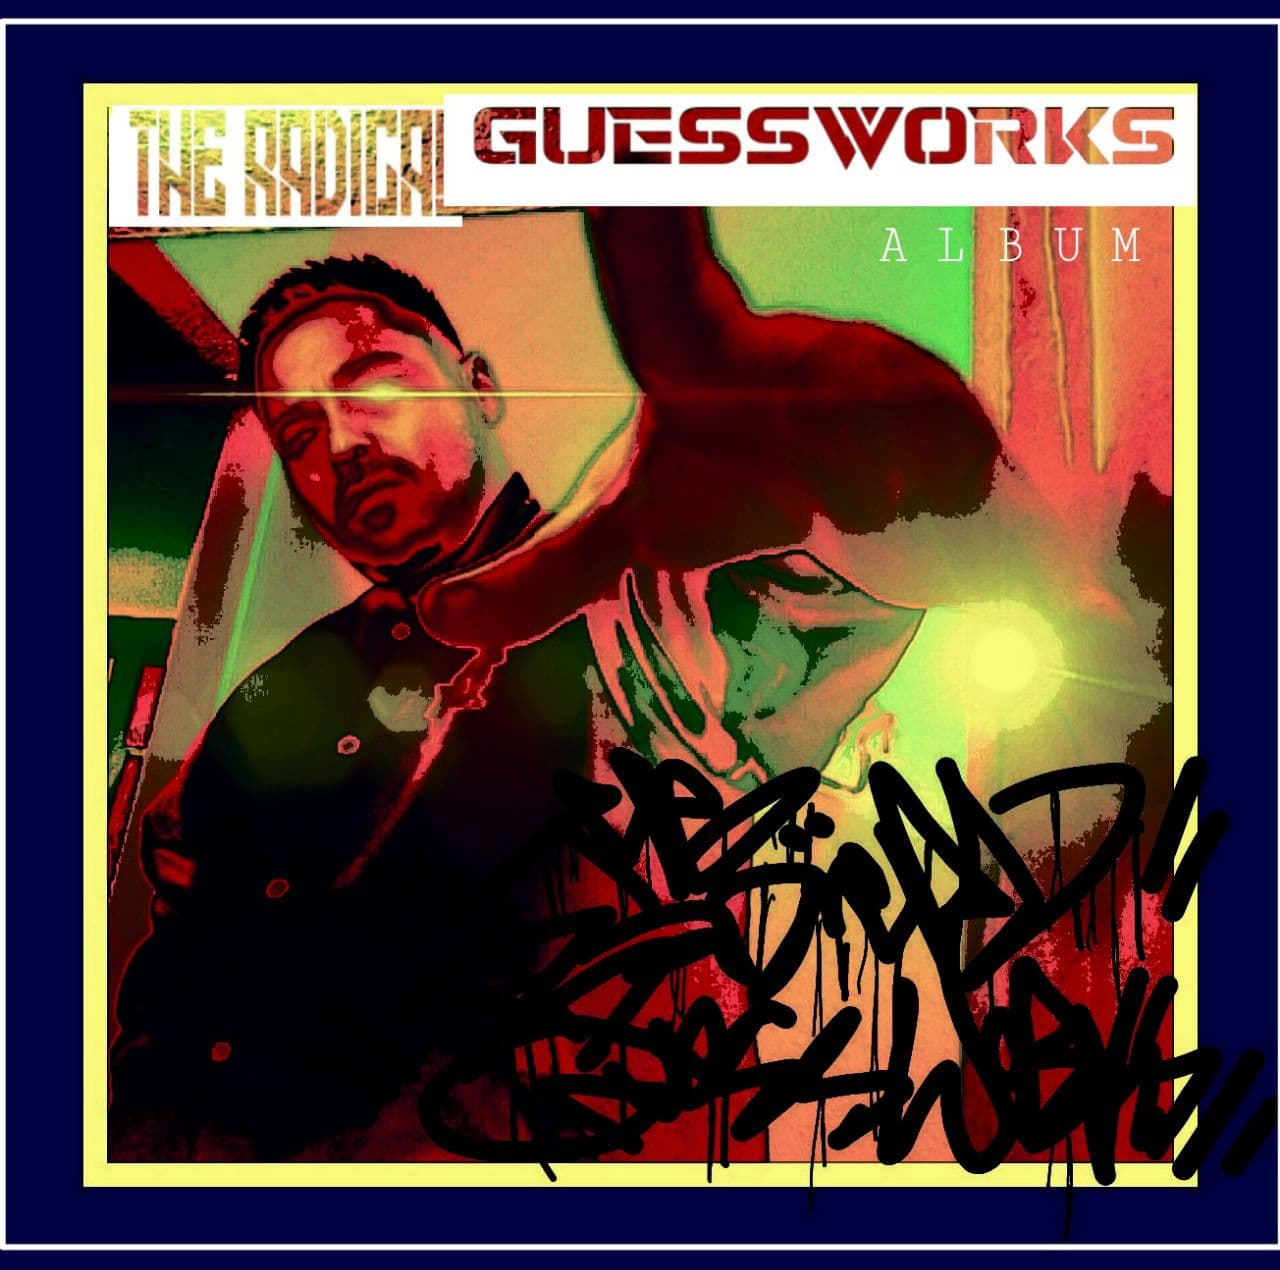 the-radical-guessworks-lp-(self-titled)-solo-album-is-now-available-[digital-download]